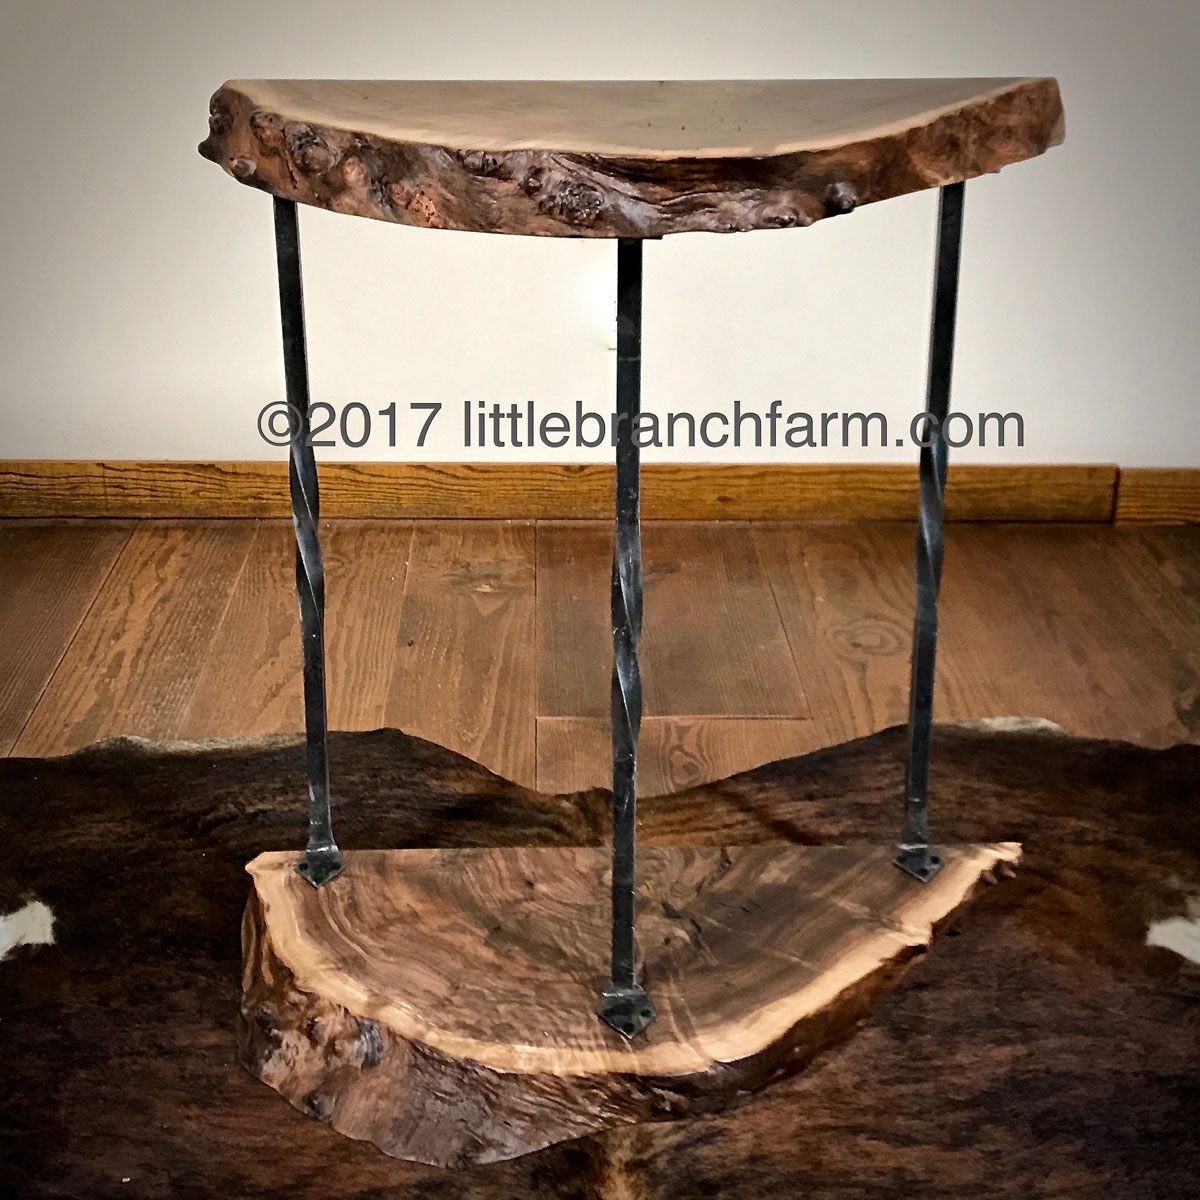 ikea black coffee table with glass top probably perfect live edge wood accent littlebranch farm end slab log bedside shoe self mid century modern bookshelf half circle mission